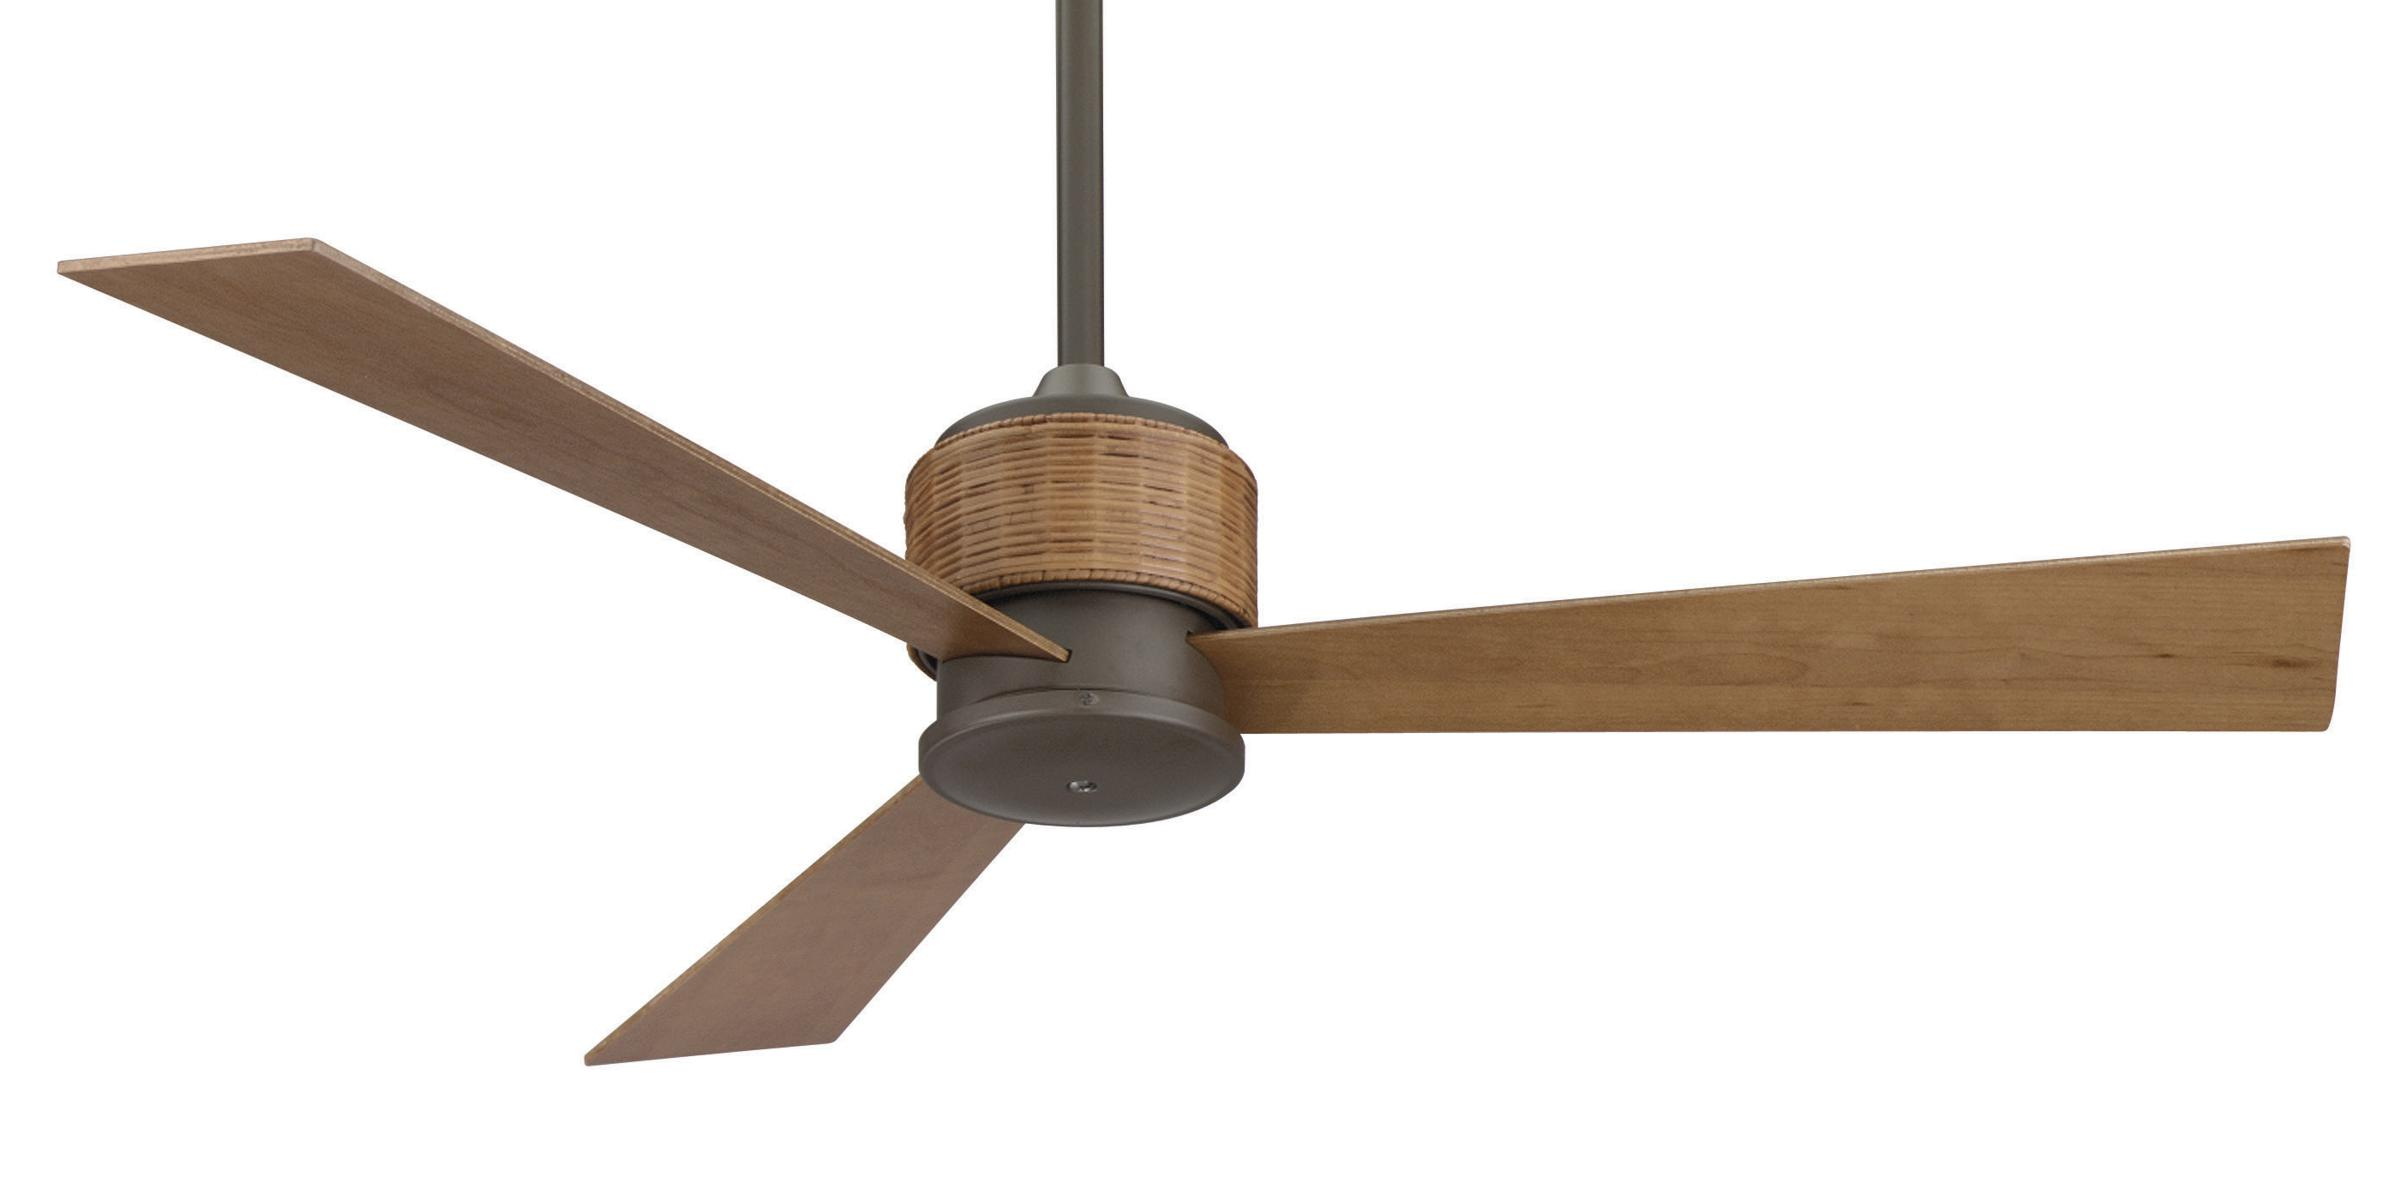 Ceiling Fan With Light | Clipart Panda - Free Clipart Images